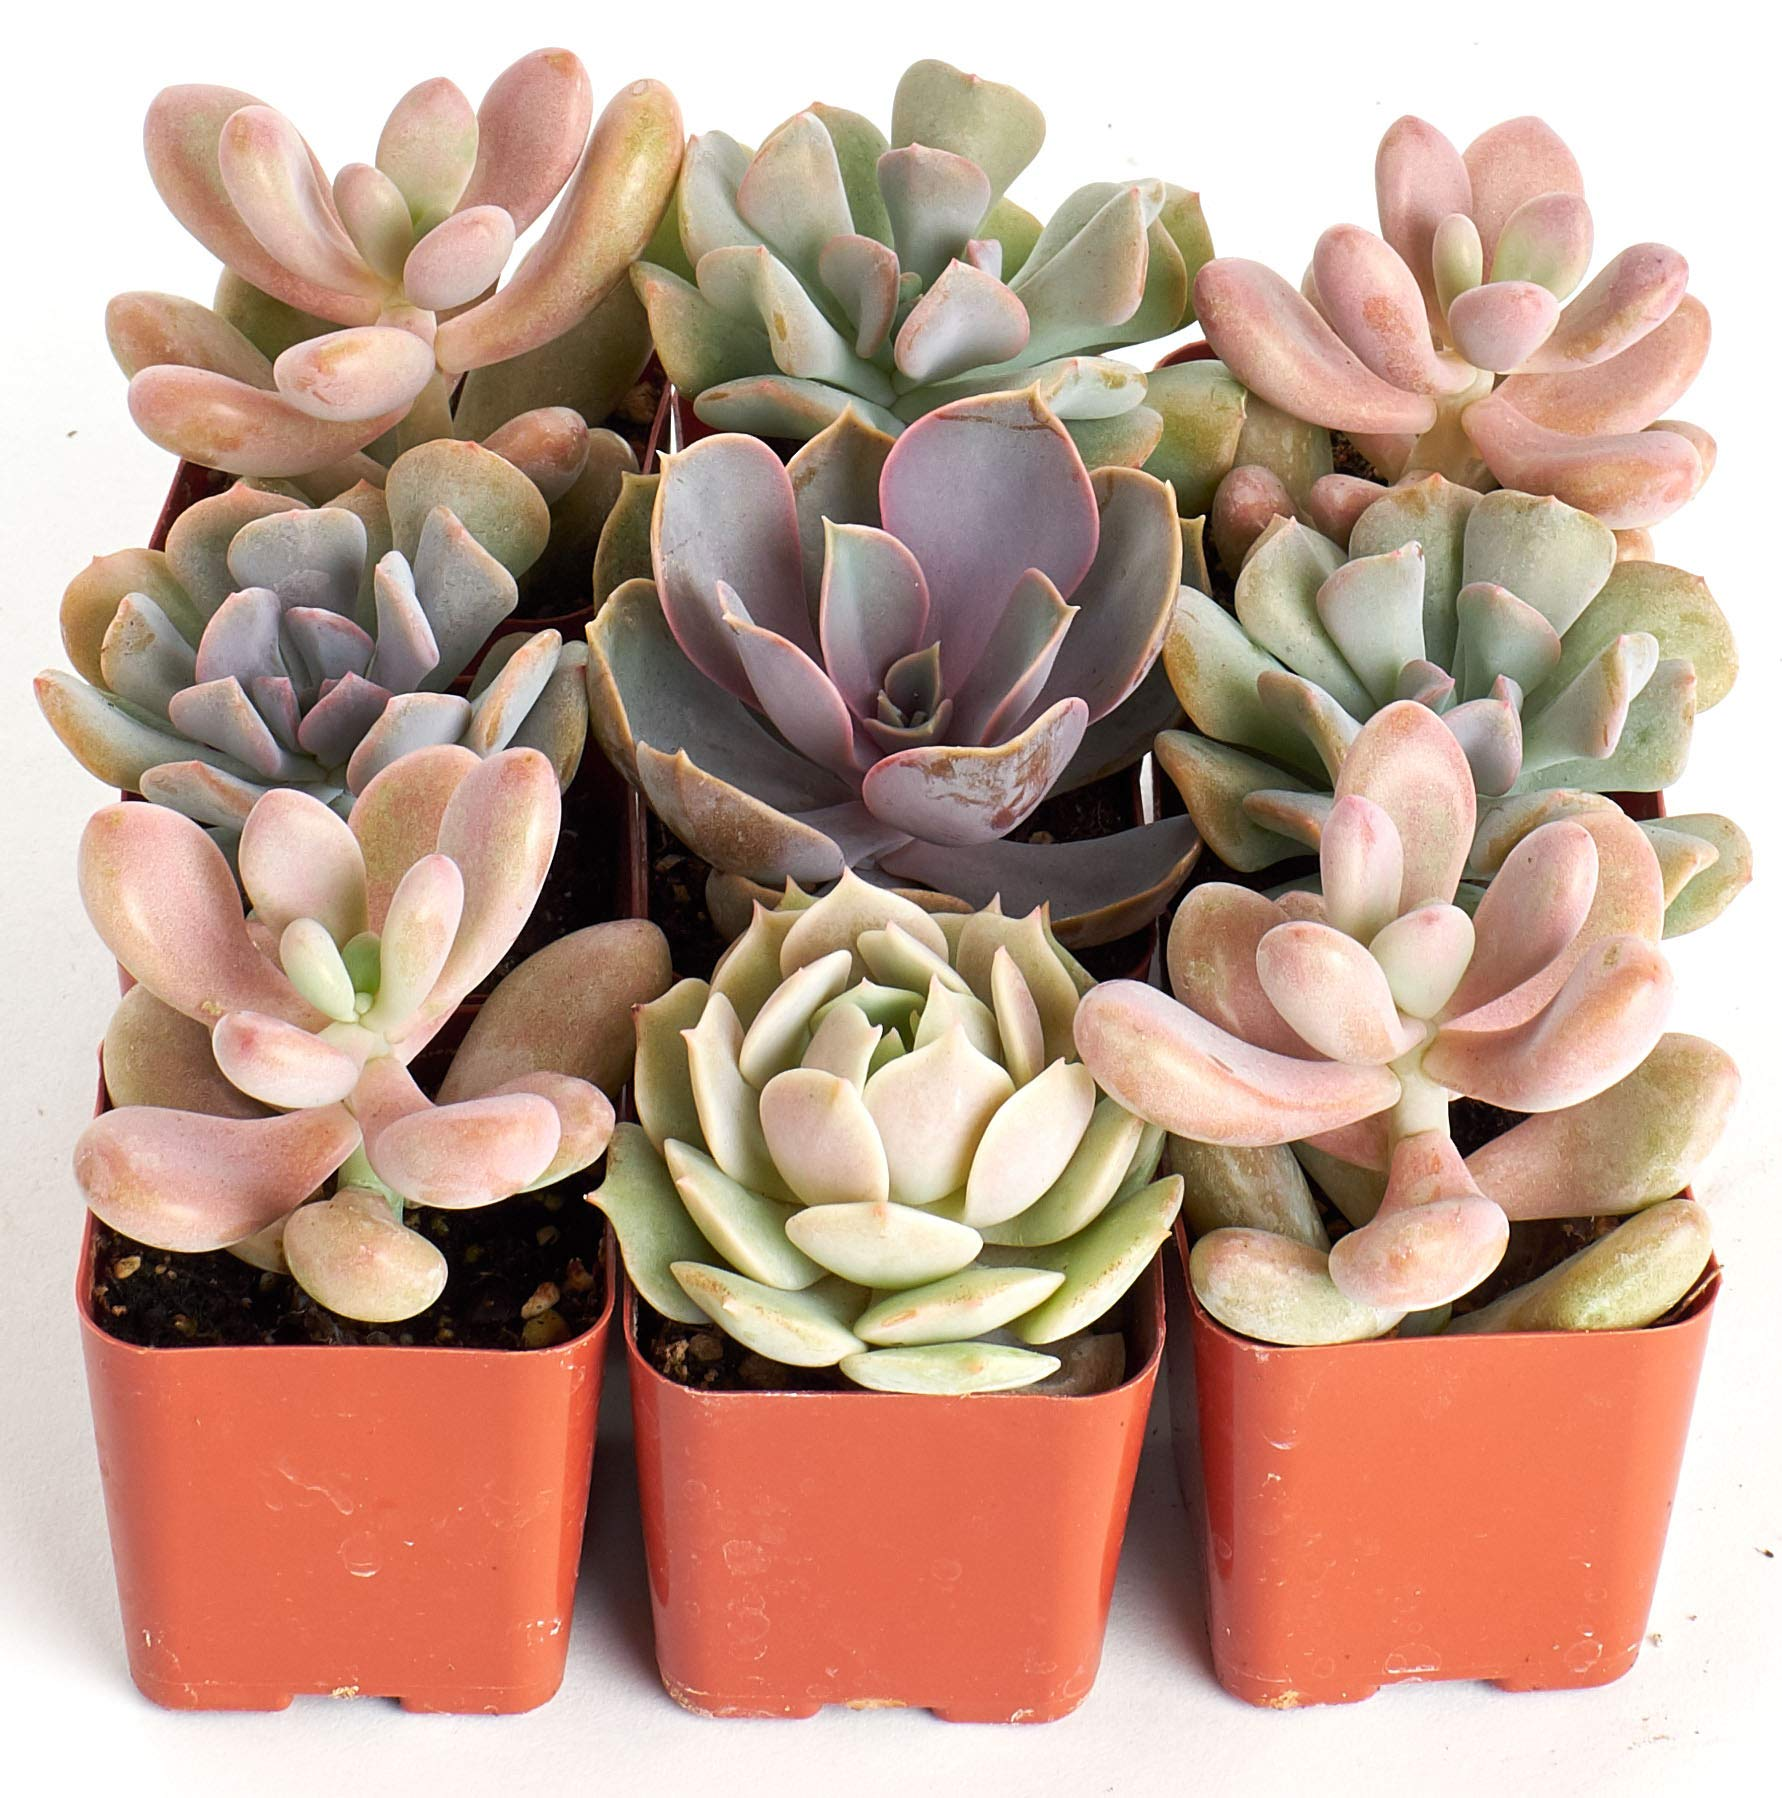 Shop Succulents | It's A Girl Pink Live Plants, Hand Selected Variety Pack of Mini Succulents | | Collection of 9 in 2'' pots, 9